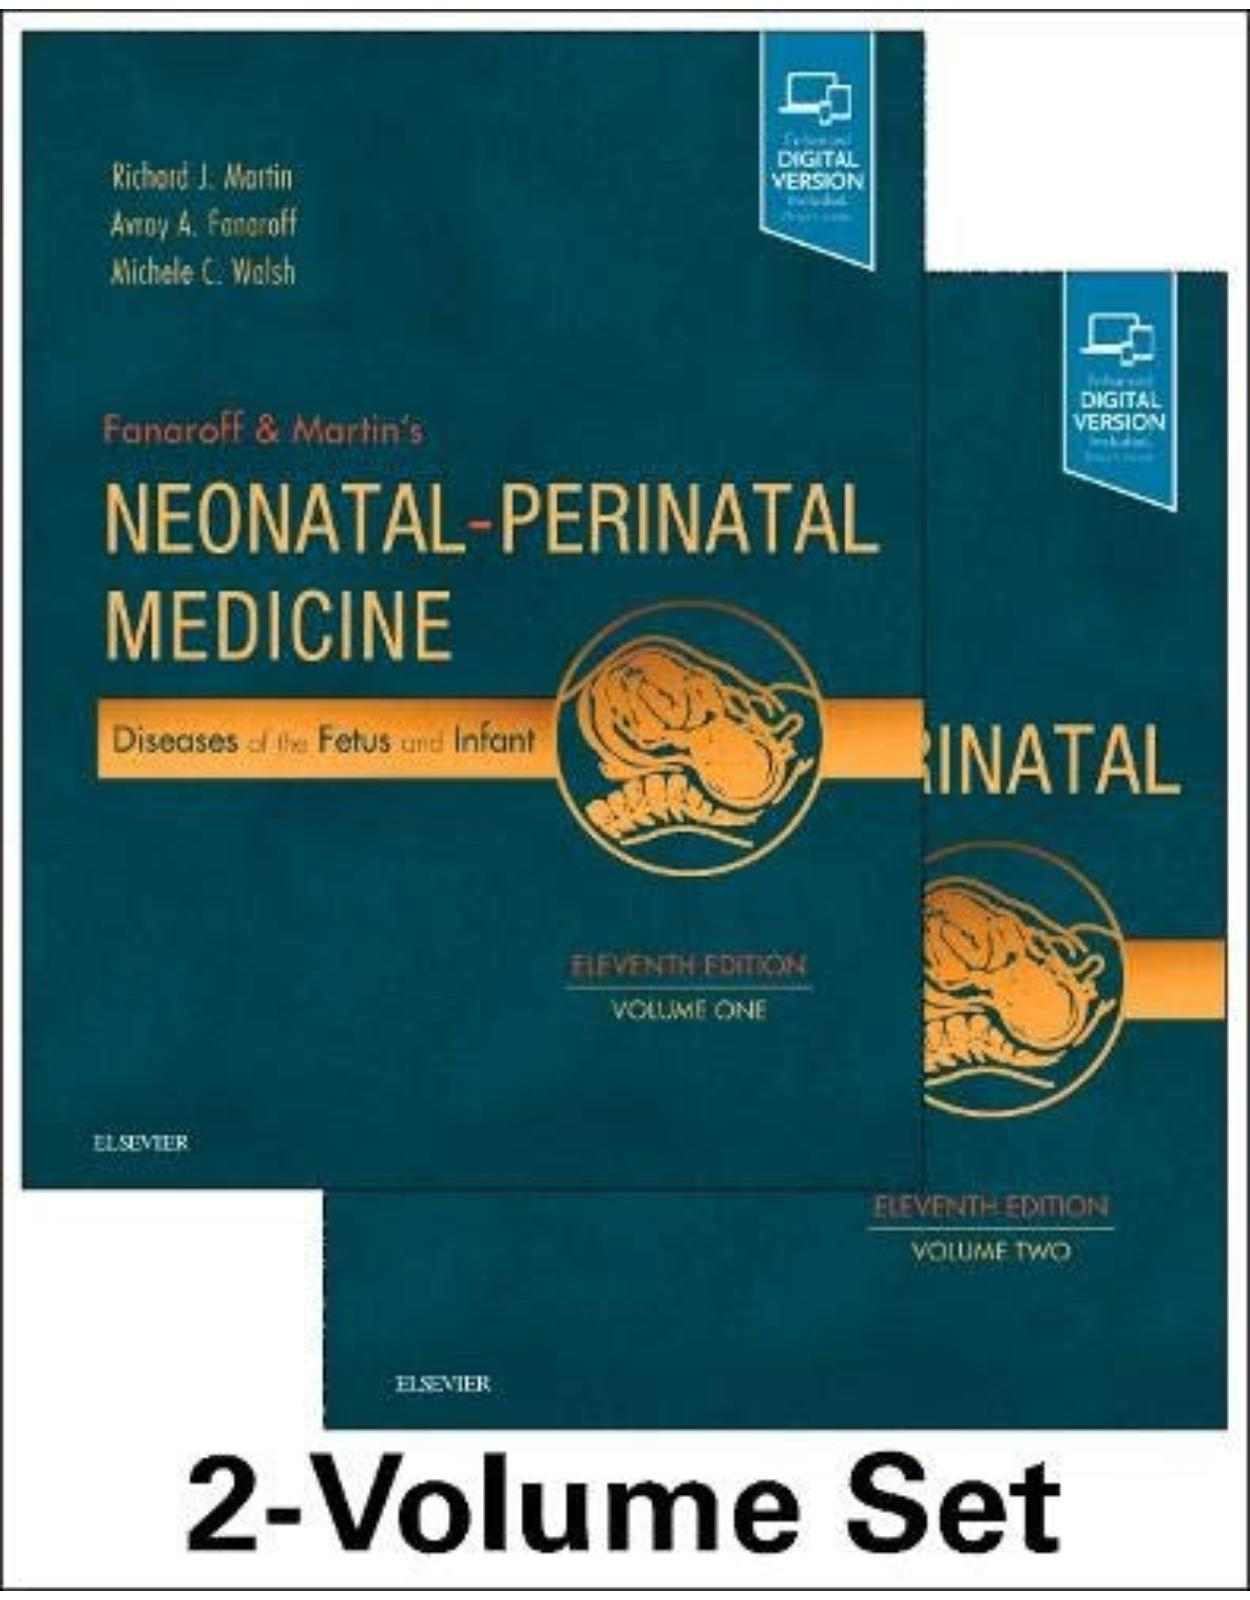 Fanaroff and Martin s Neonatal-Perinatal Medicine, 2-Volume Set, 11th Edition